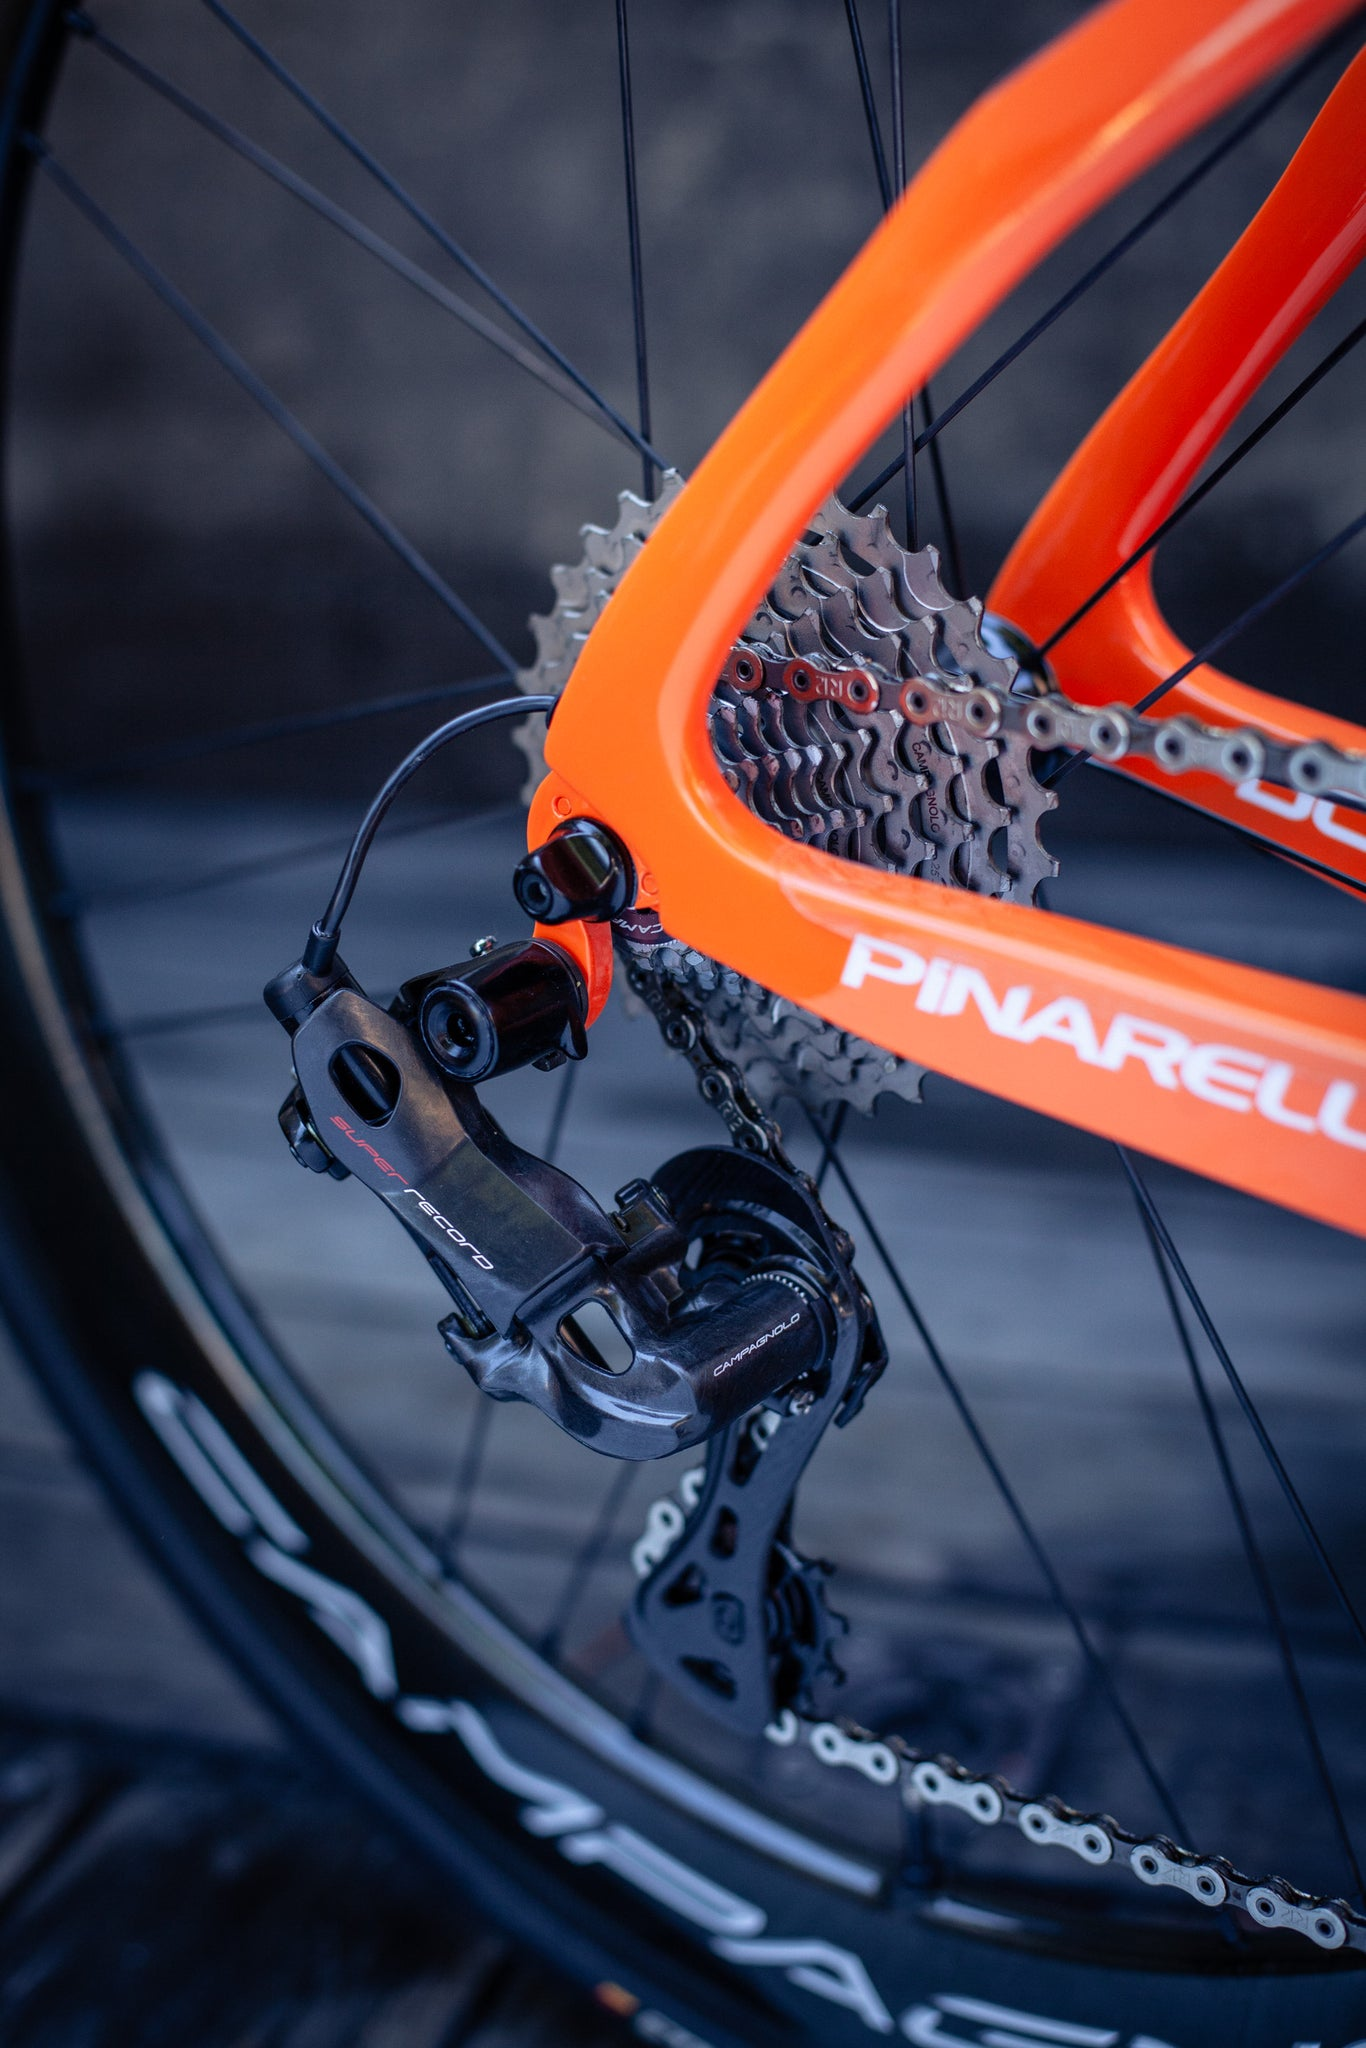 pinarello f12 super record rear derailleur EPS